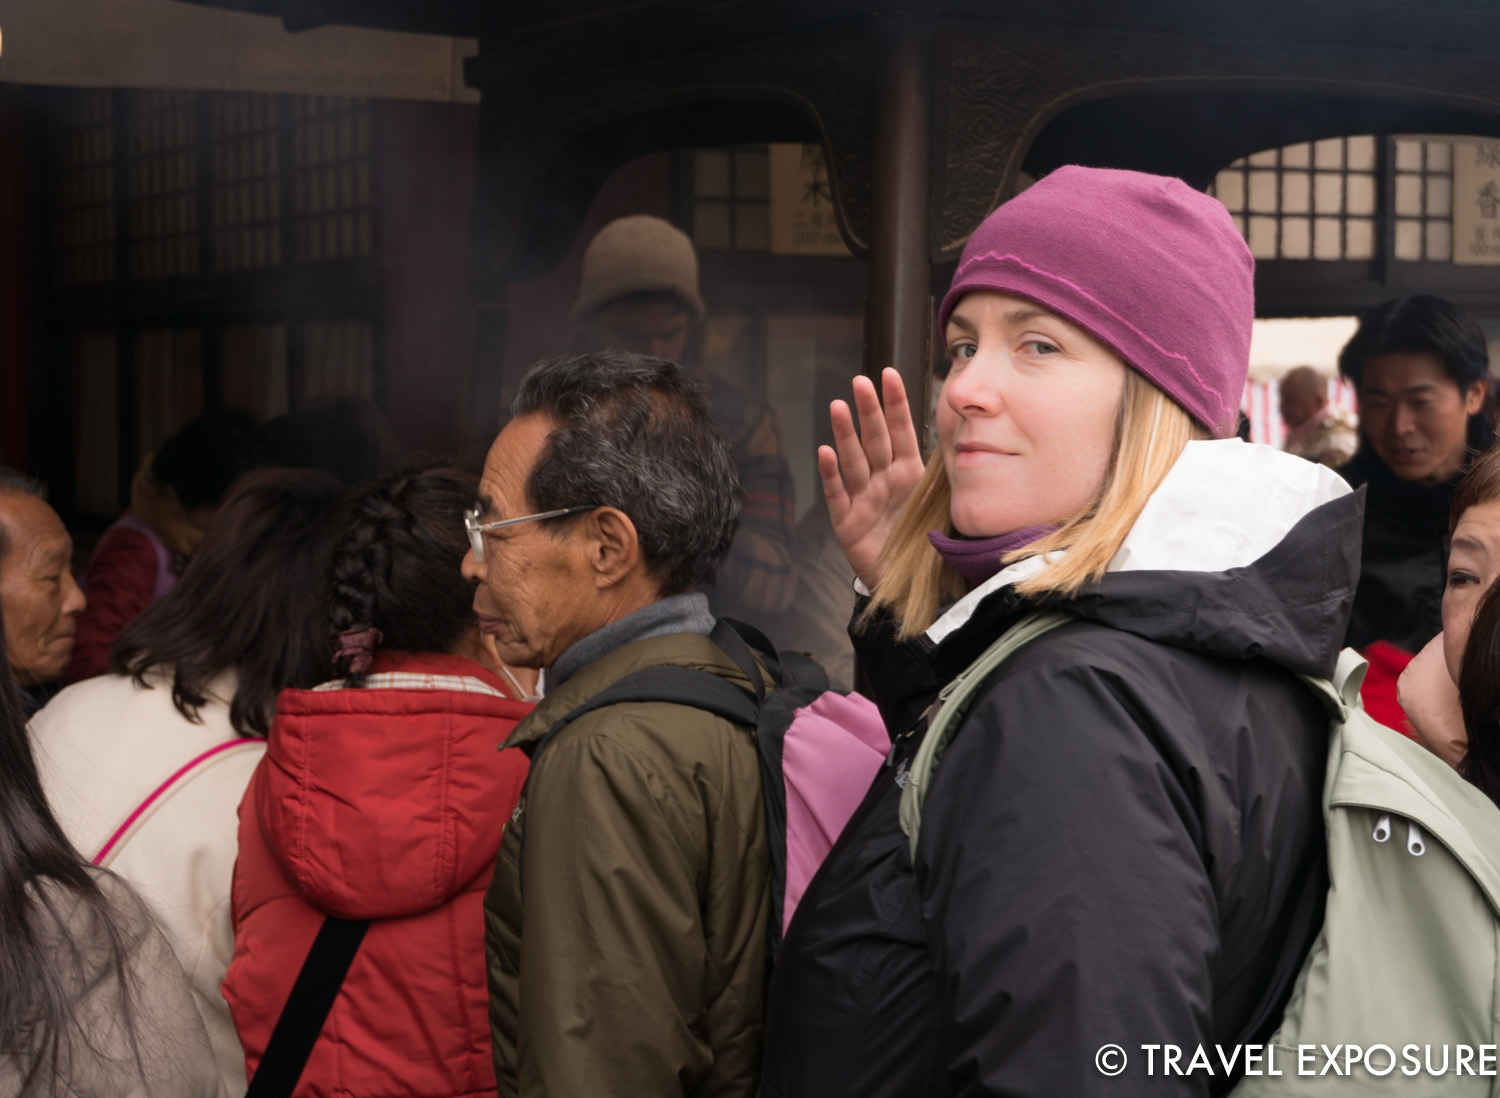 Just outside of the temple entrance, there is a large pot of incense being continuously burnt. People stop to waft the smoke over themselves which is thought to help heal ailments.